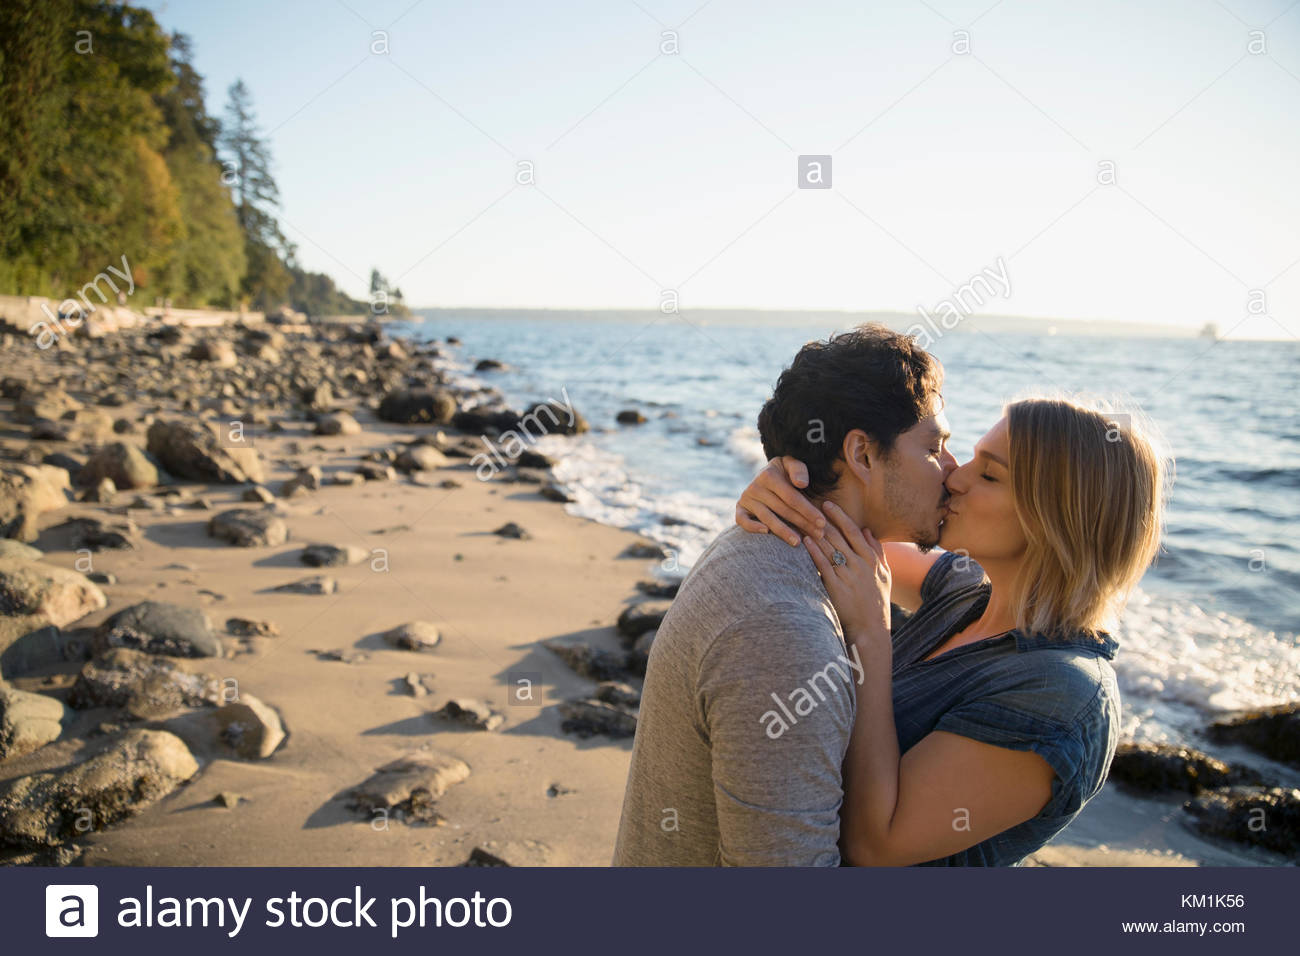 Affectionate couple kissing on sunny beach océan Photo Stock